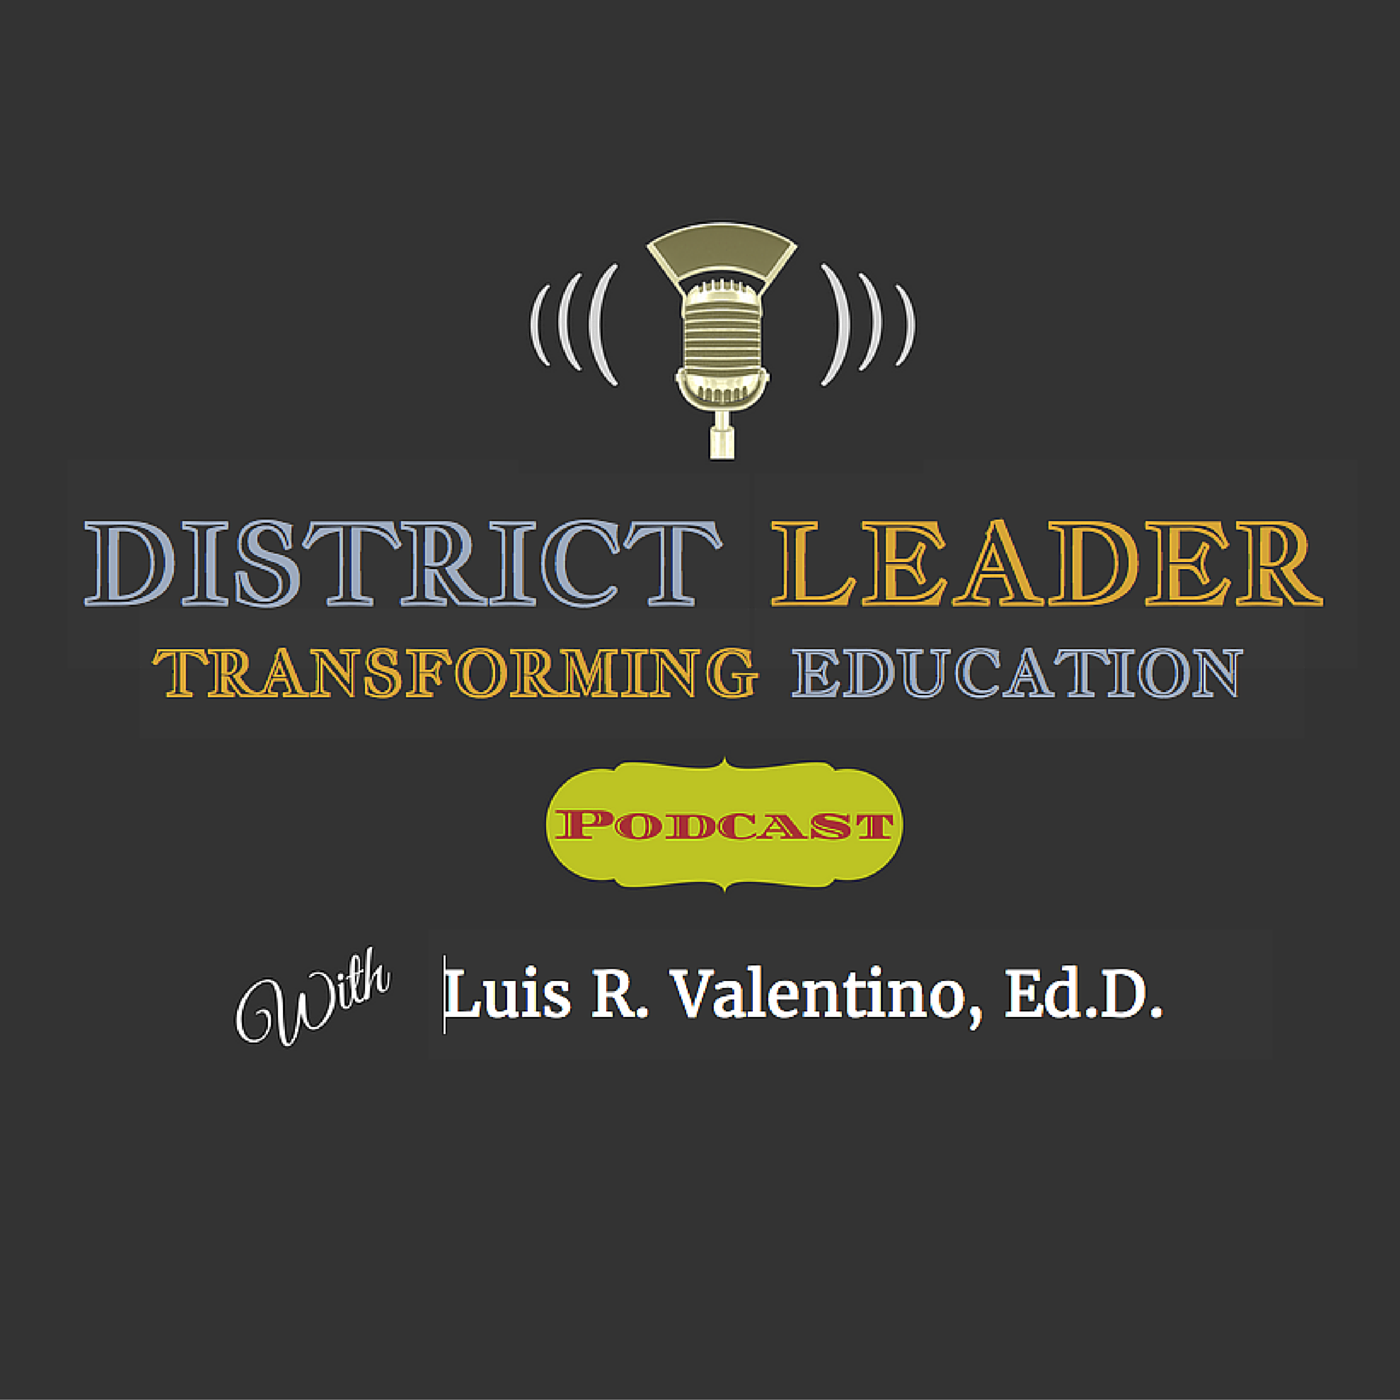 District Leader